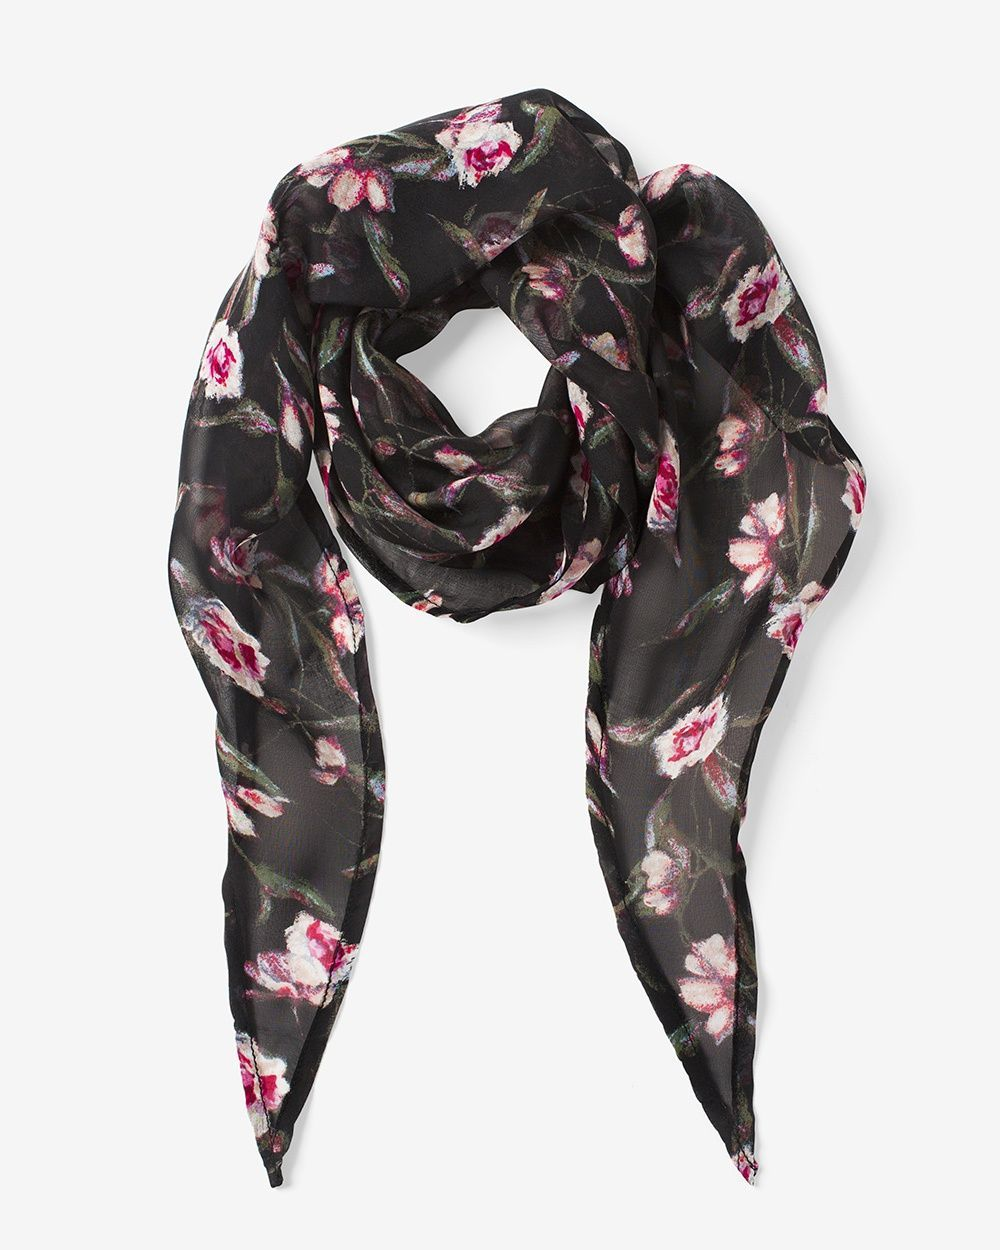 800af800835 Women's Silk Floral Square Mini Scarf by WHBM | Products | Floral ...